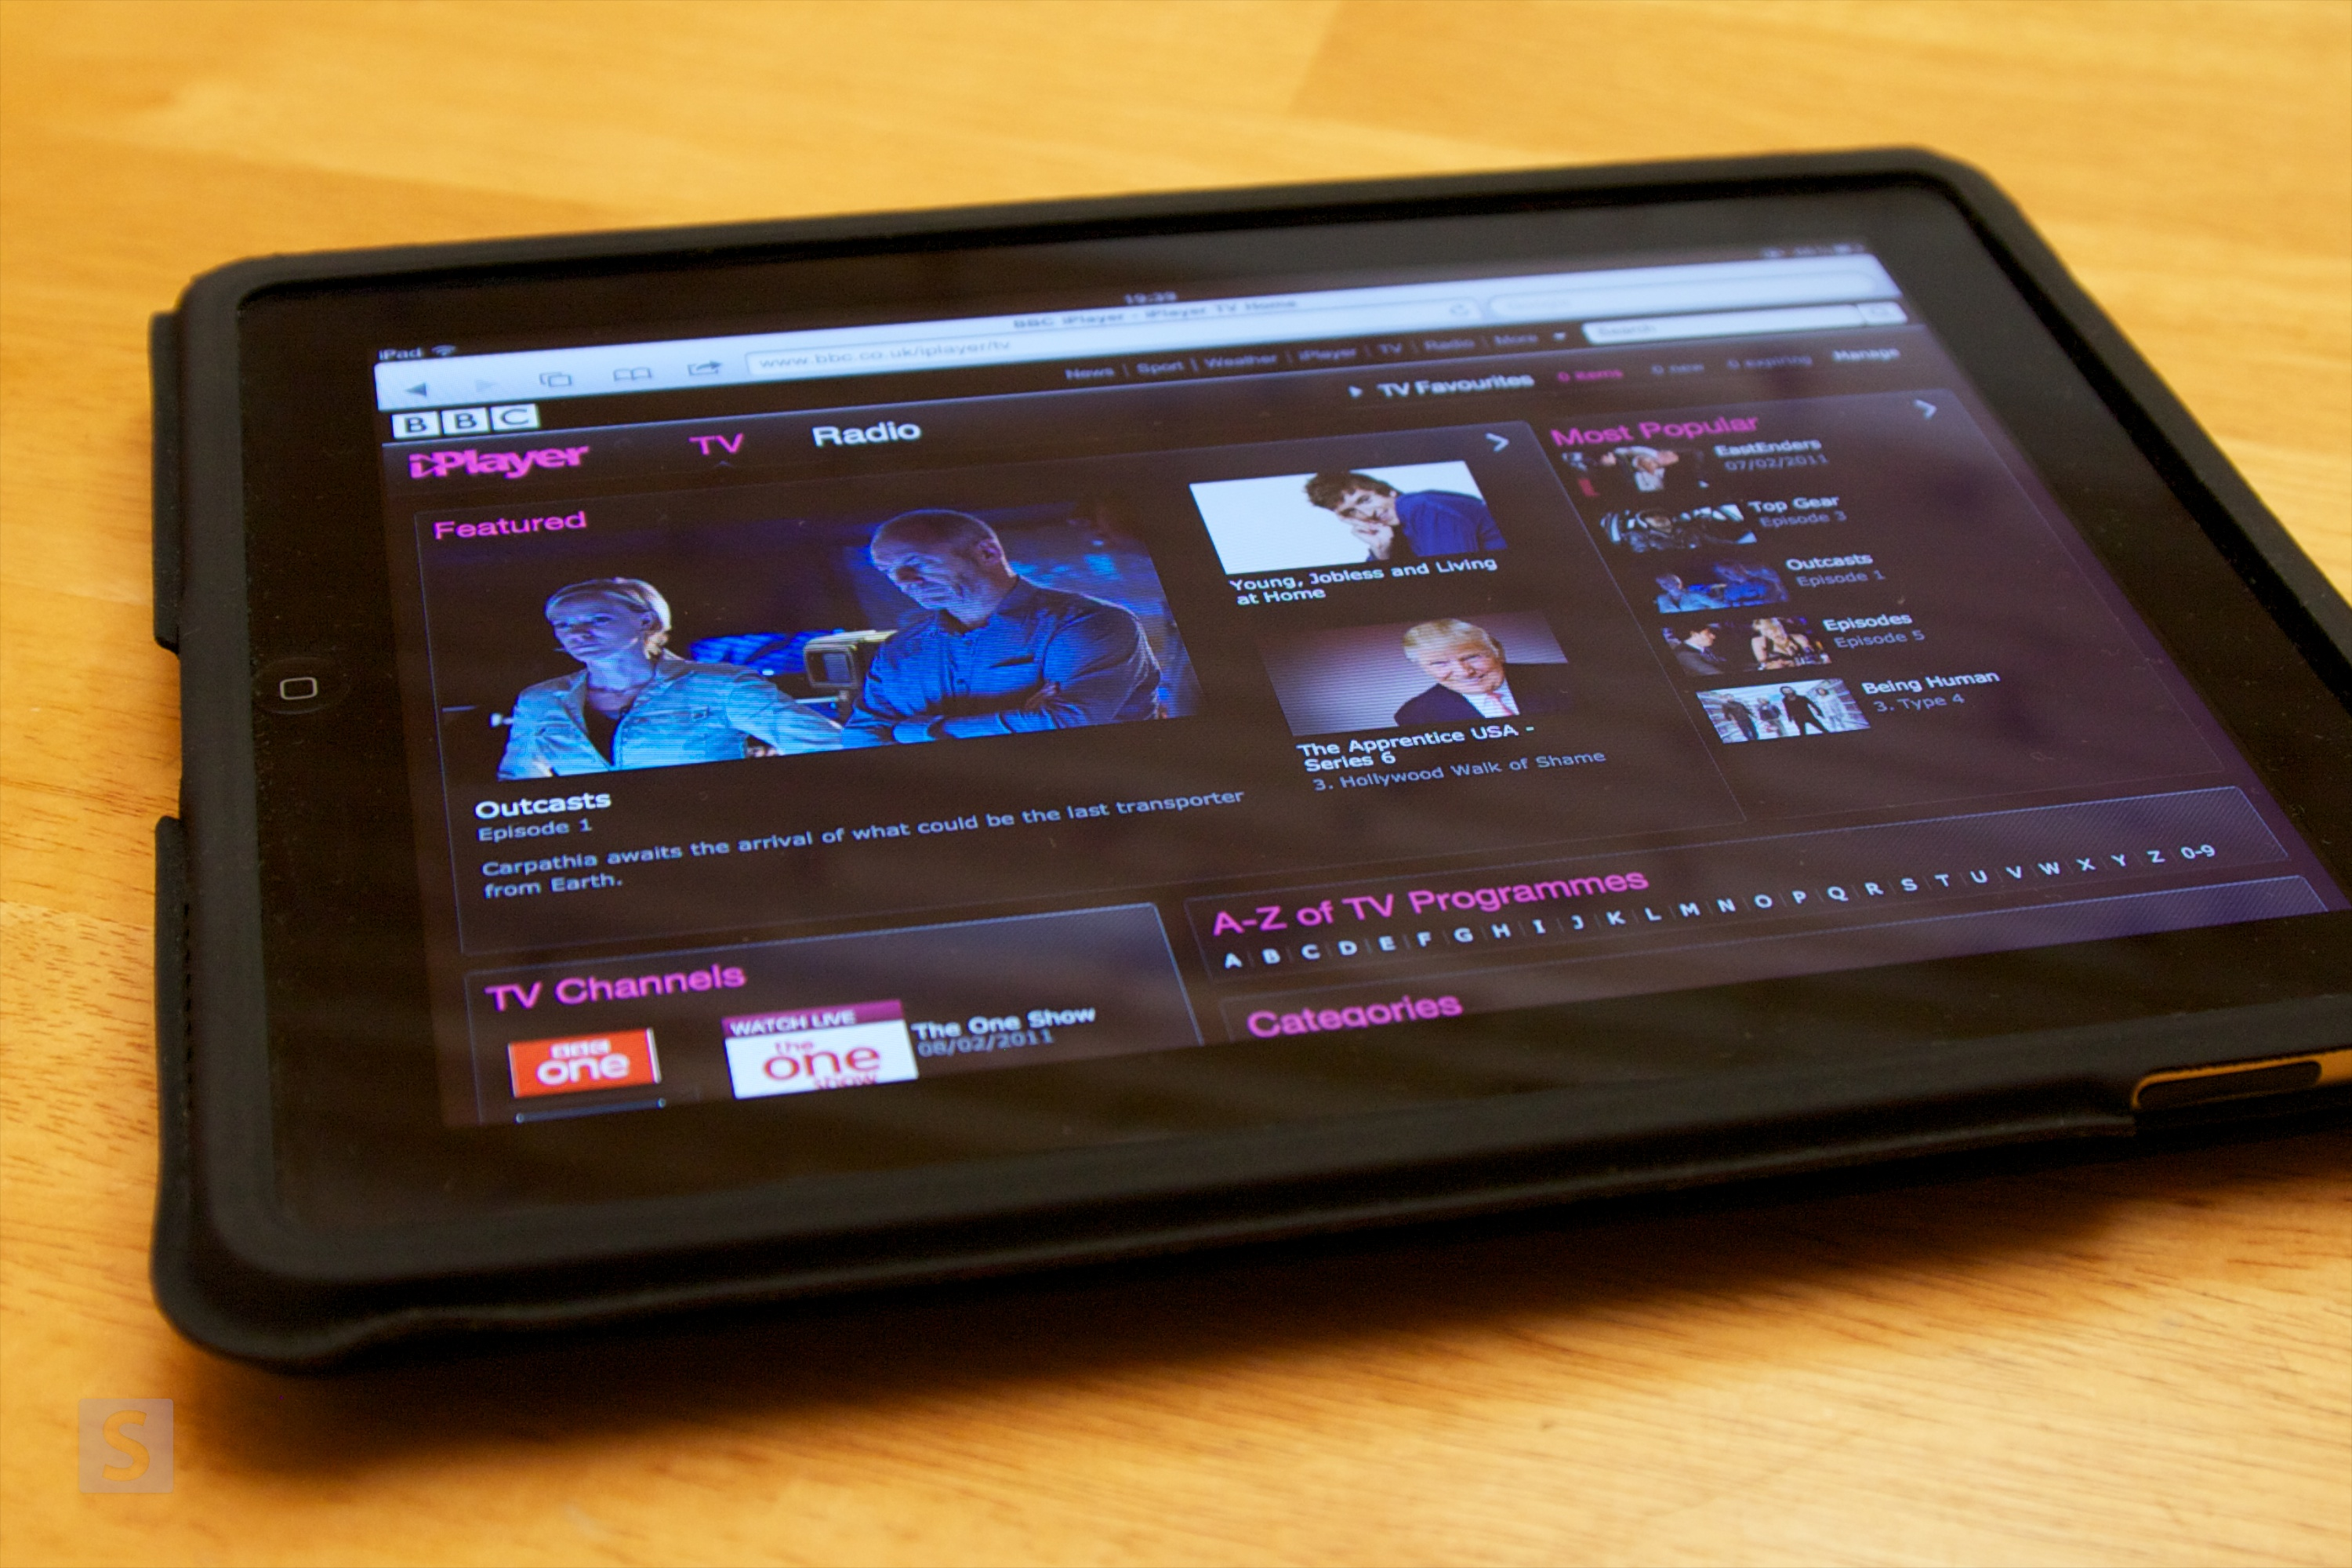 BBC iPlayer on the iPad